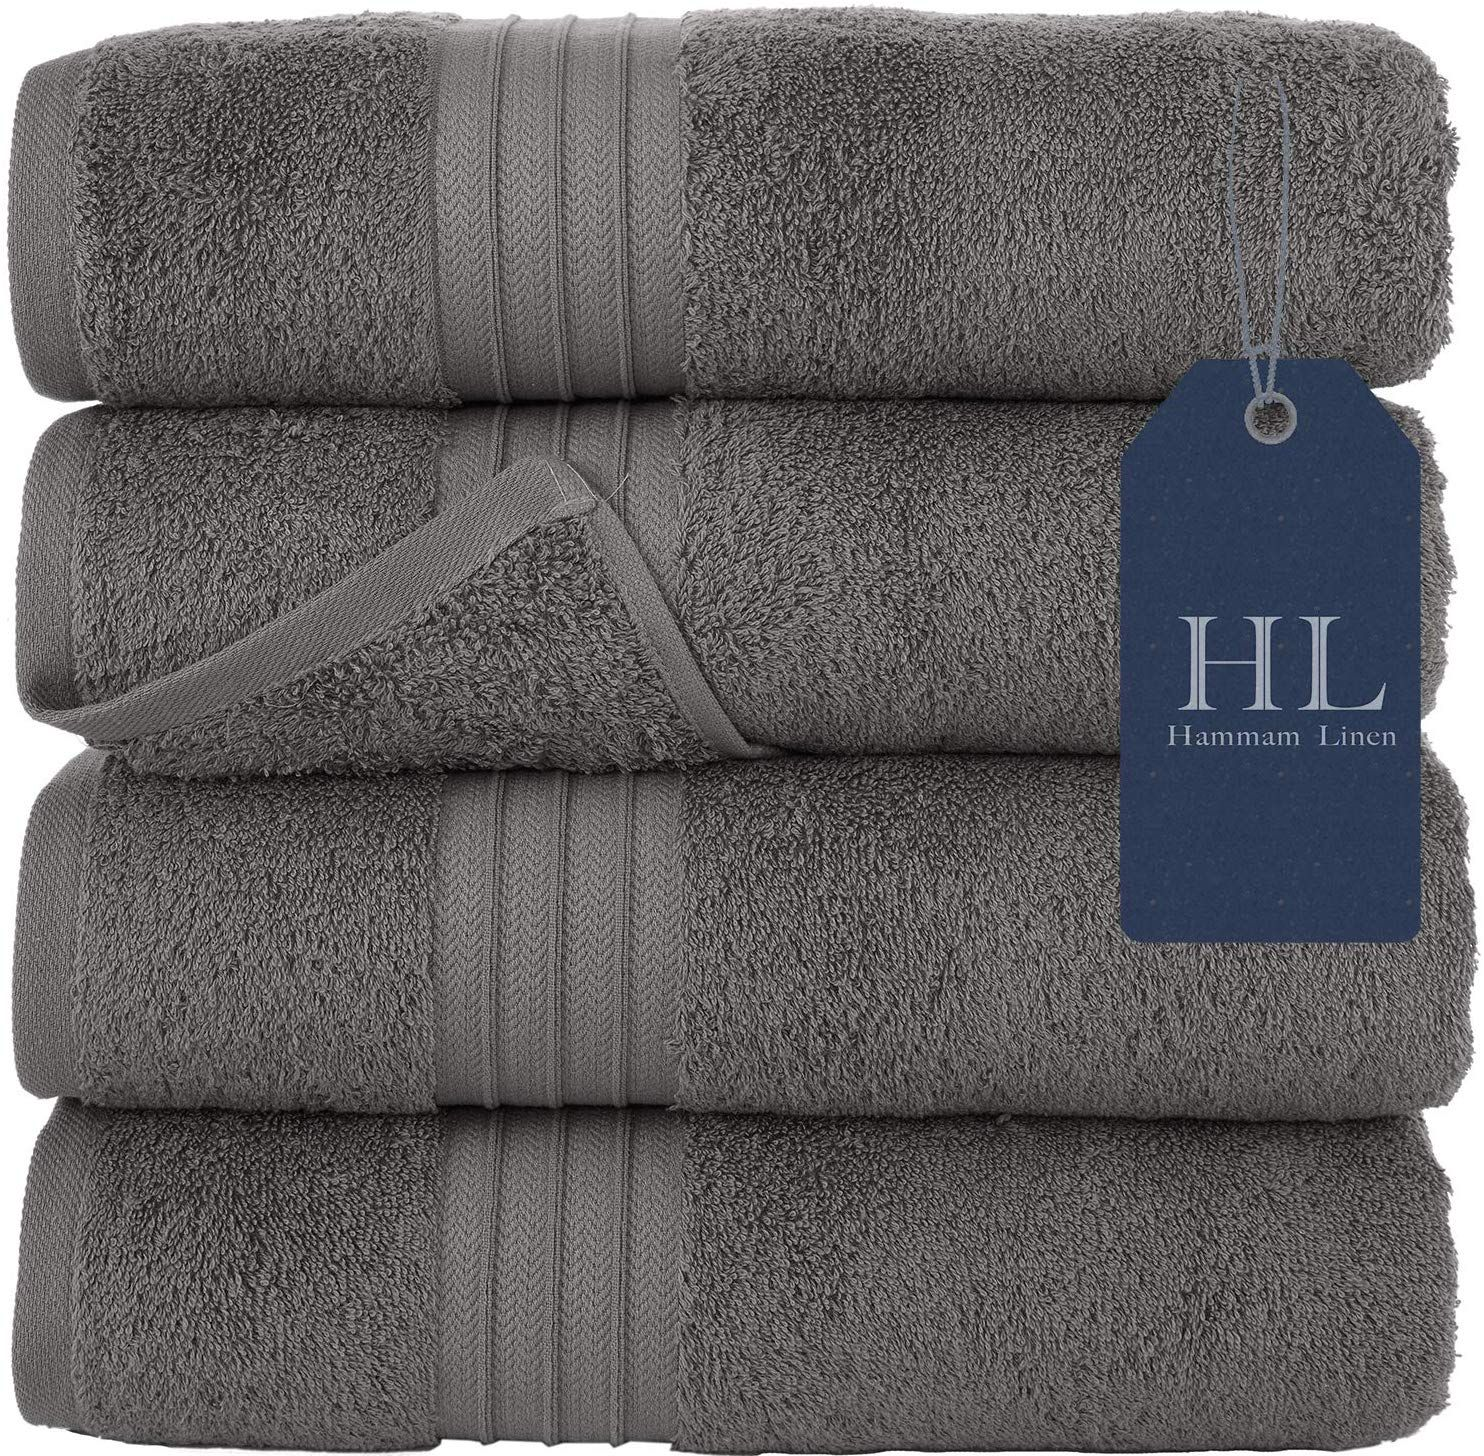 Best Luxury Towels You Can See Your Best Picks In 2020 Spa